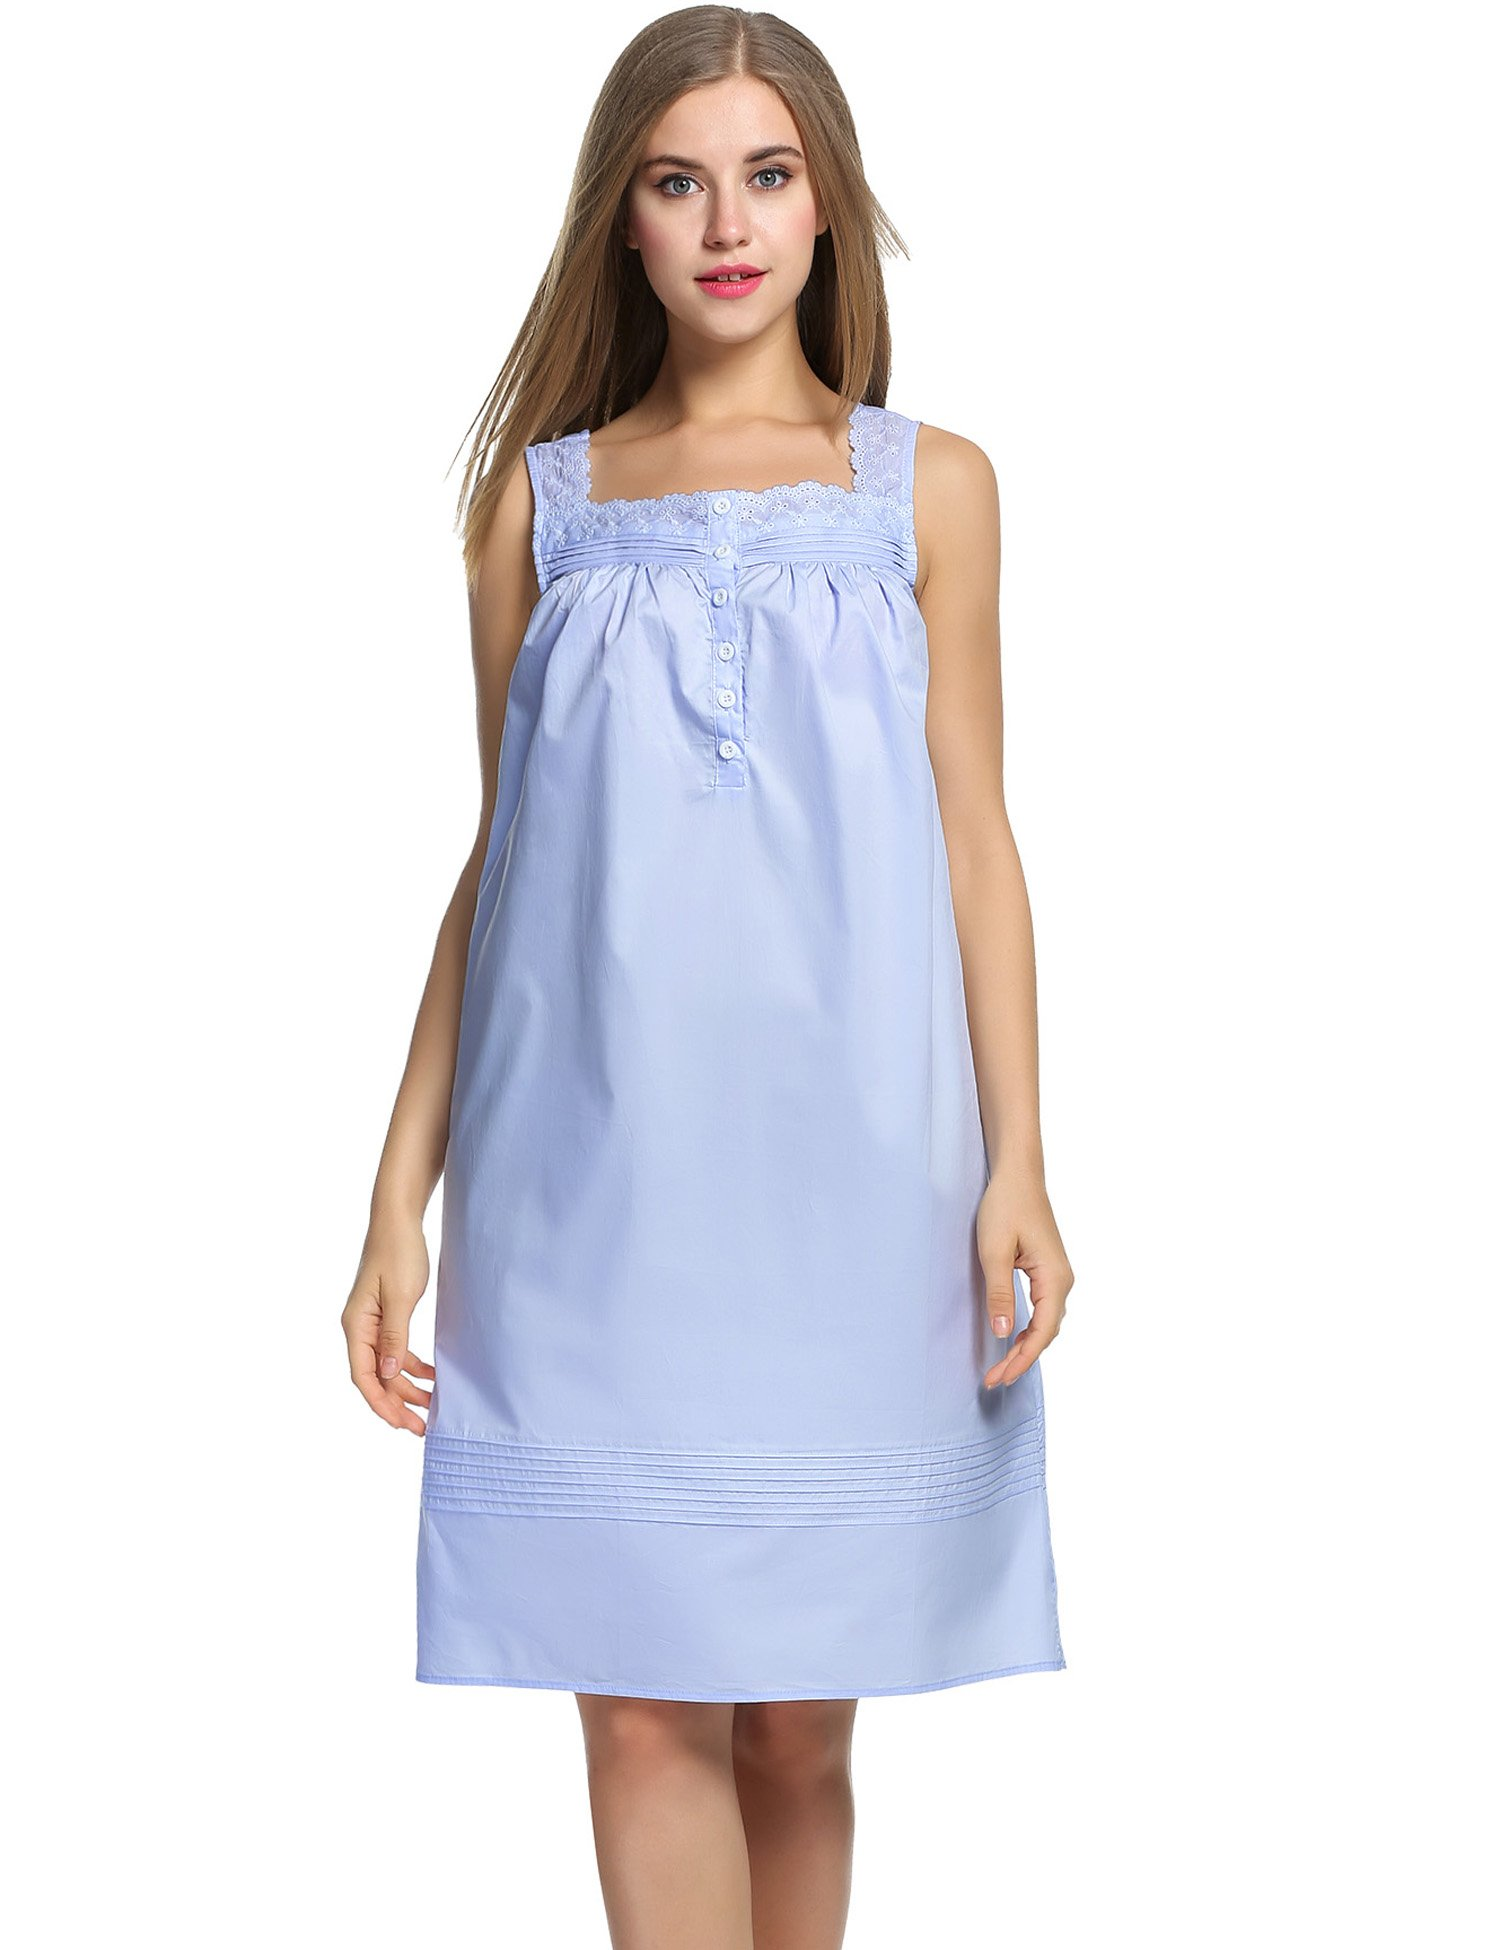 Hotouch Women's Plus-Size Sleep Shirt Lightweight Nightgowns Light Blue L by Hotouch (Image #1)